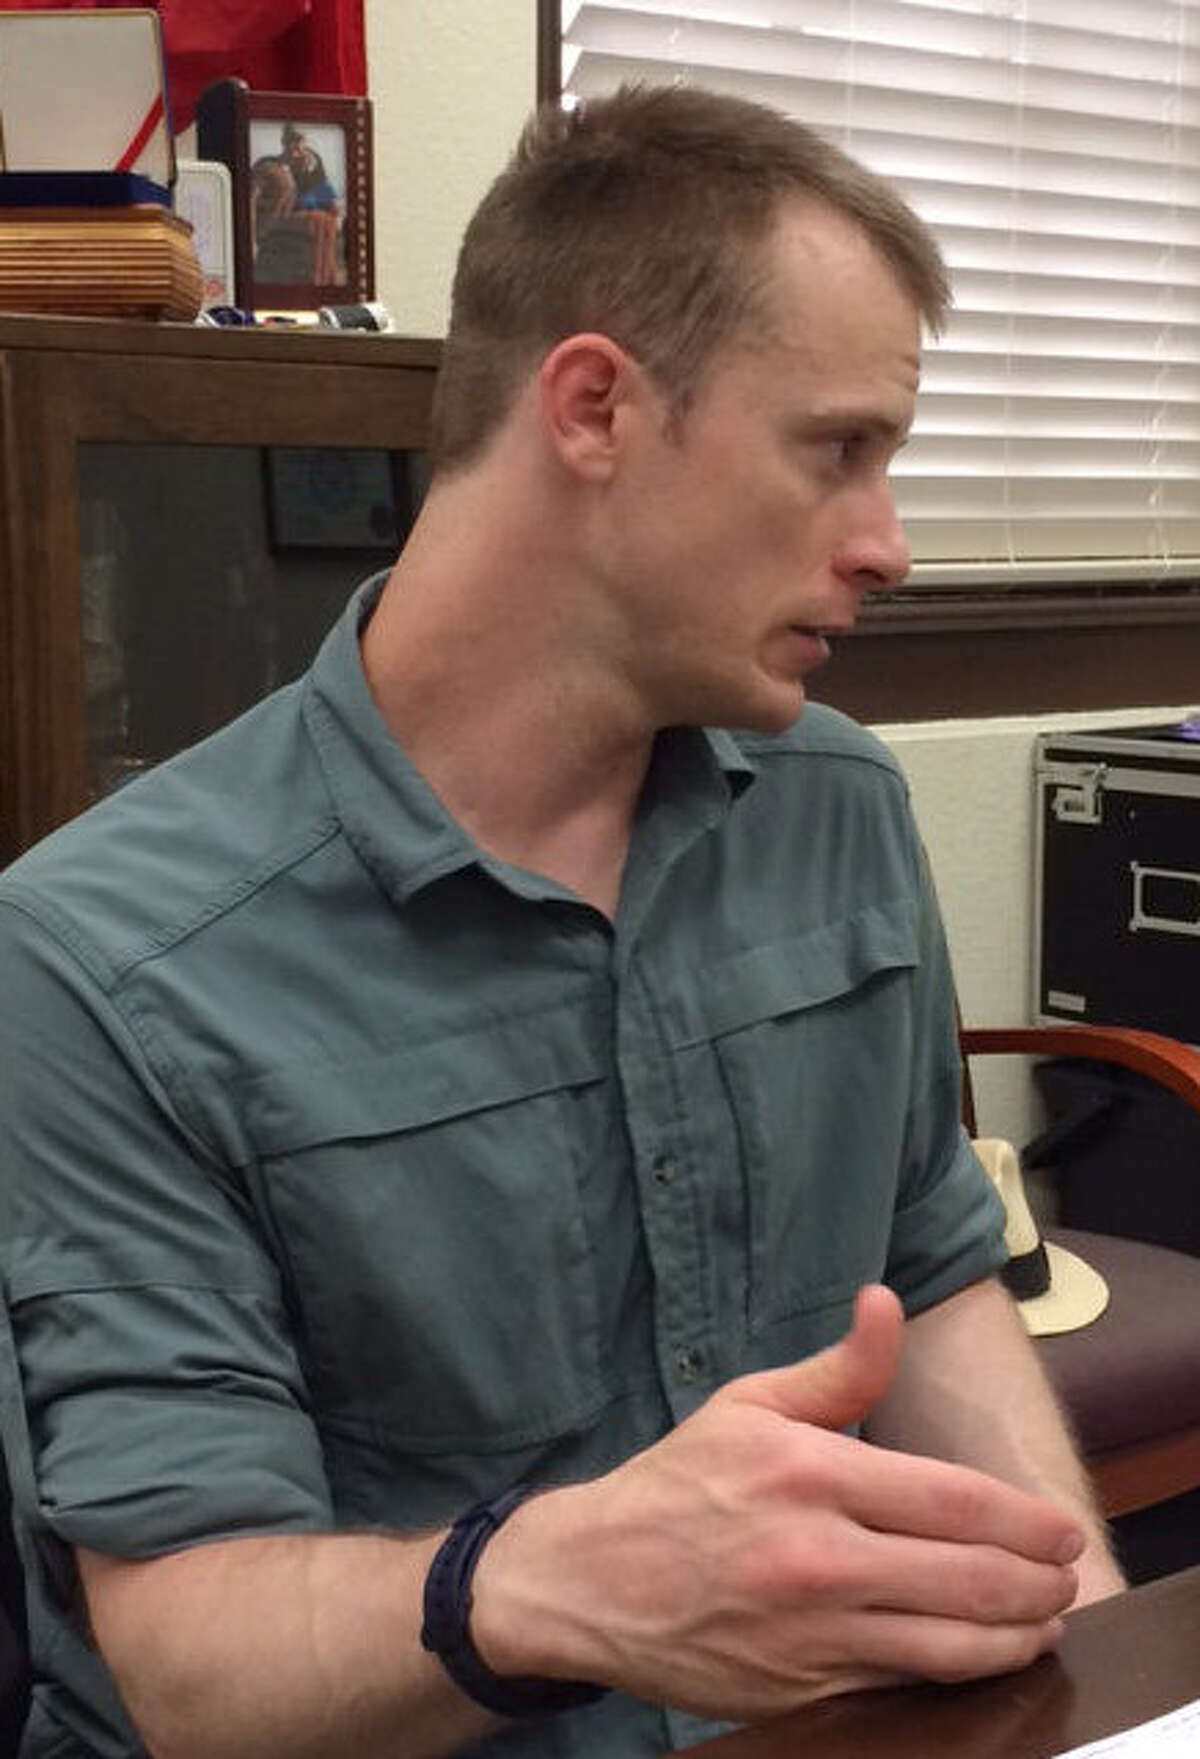 Army Sgt. Bowe Bergdahl has been at Joint Base San Antonio-Fort Sam Houston since June 13.